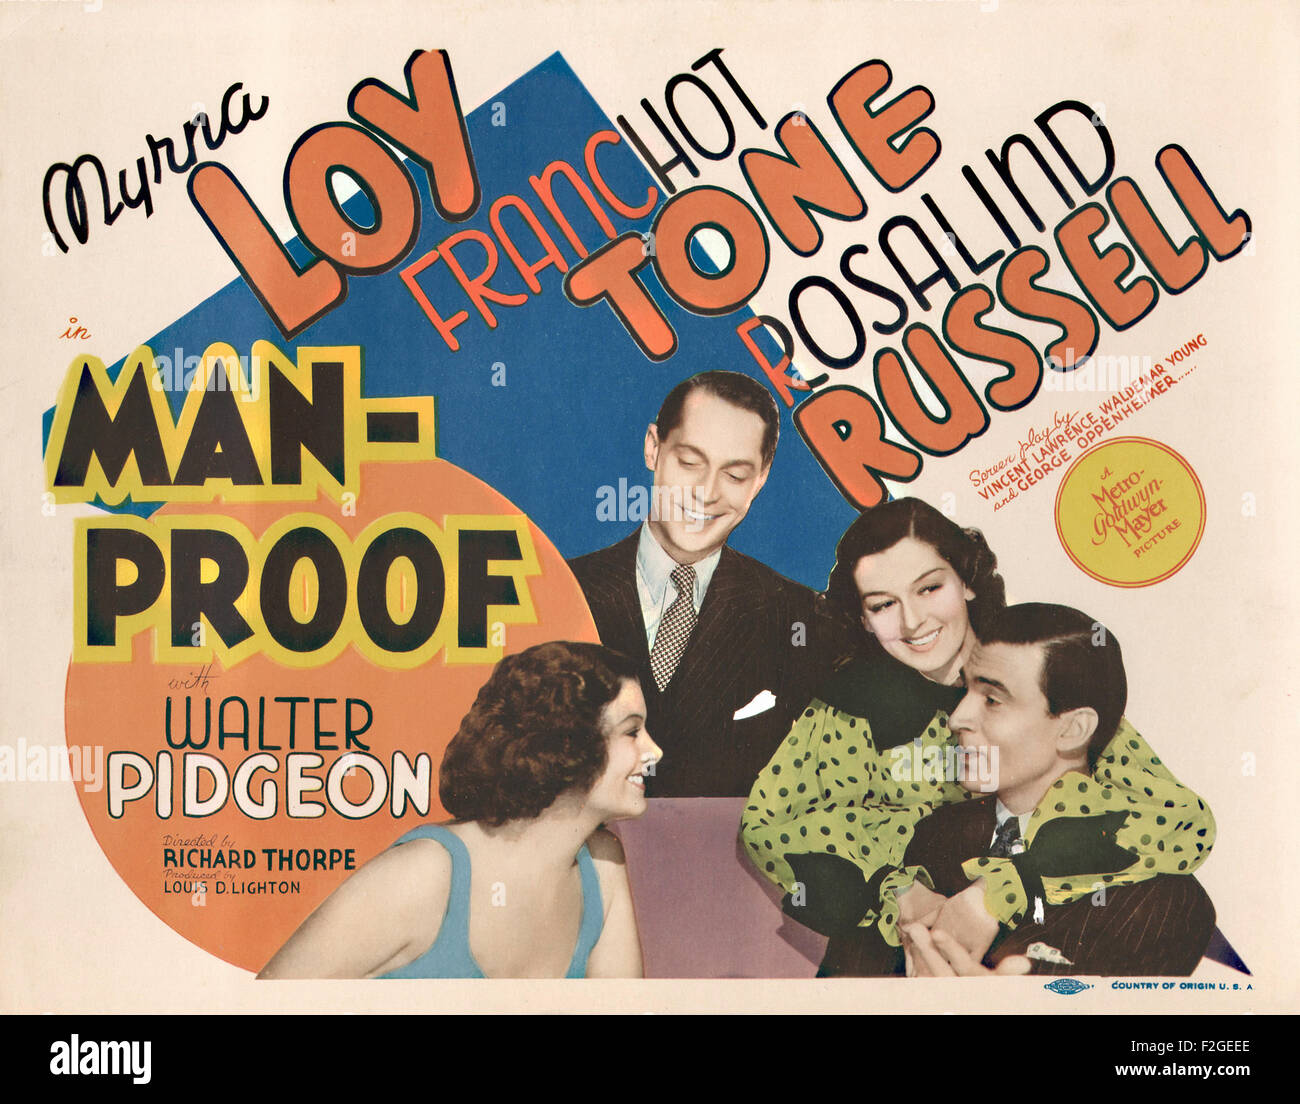 Man Proof 01 - Movie Poster - Stock Image